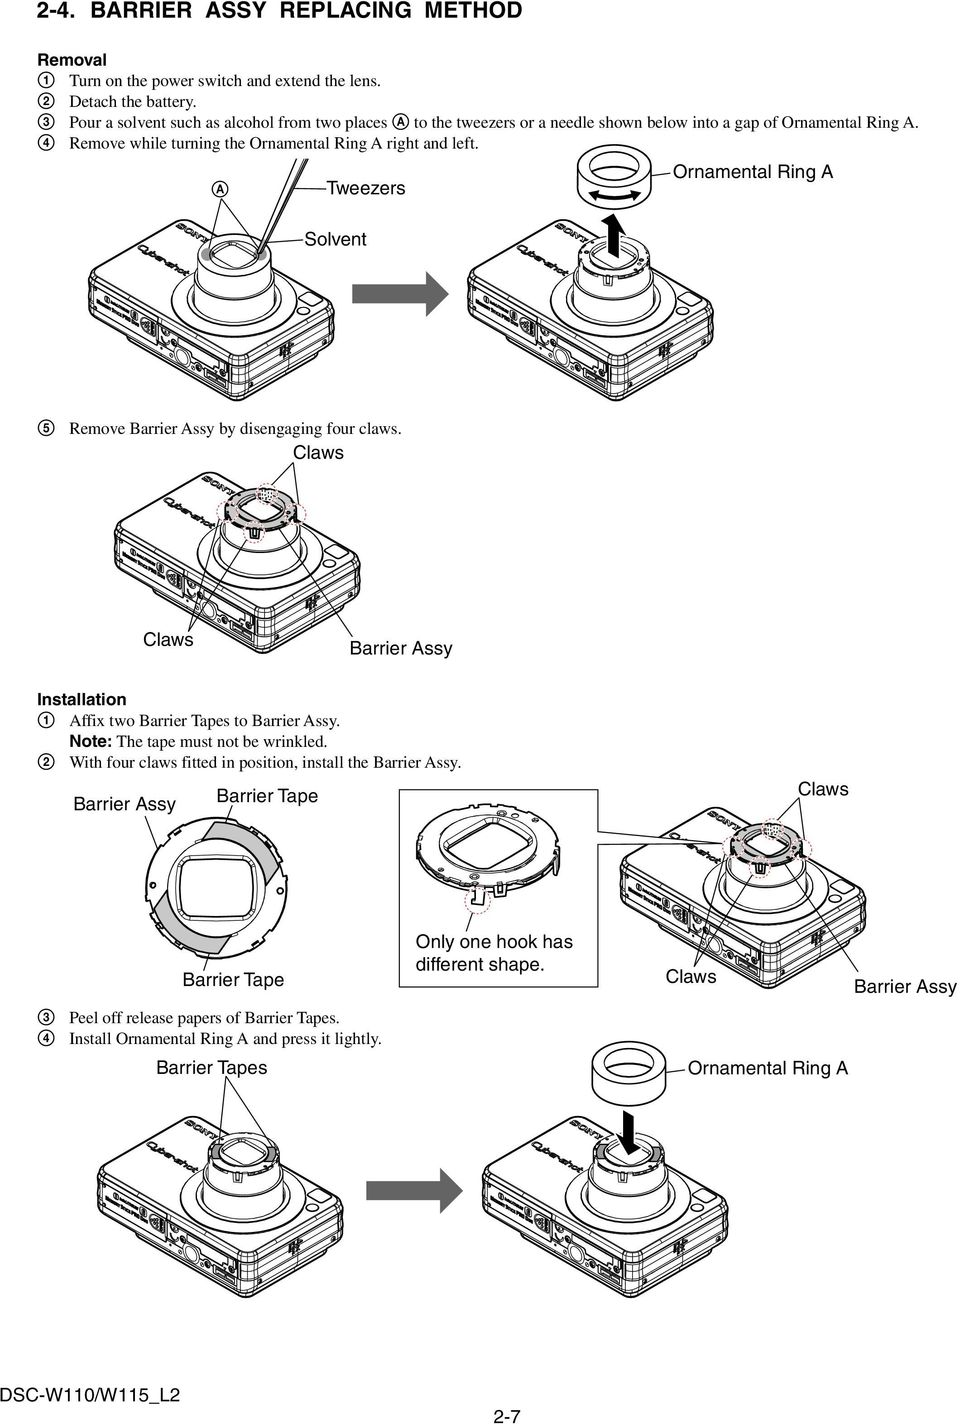 Dsc W110 W115 Pdf Wiring Diagram A Tweezers Solvent Ornamental Ring 5 Remove Barrier Assy By Disengaging Four Claws